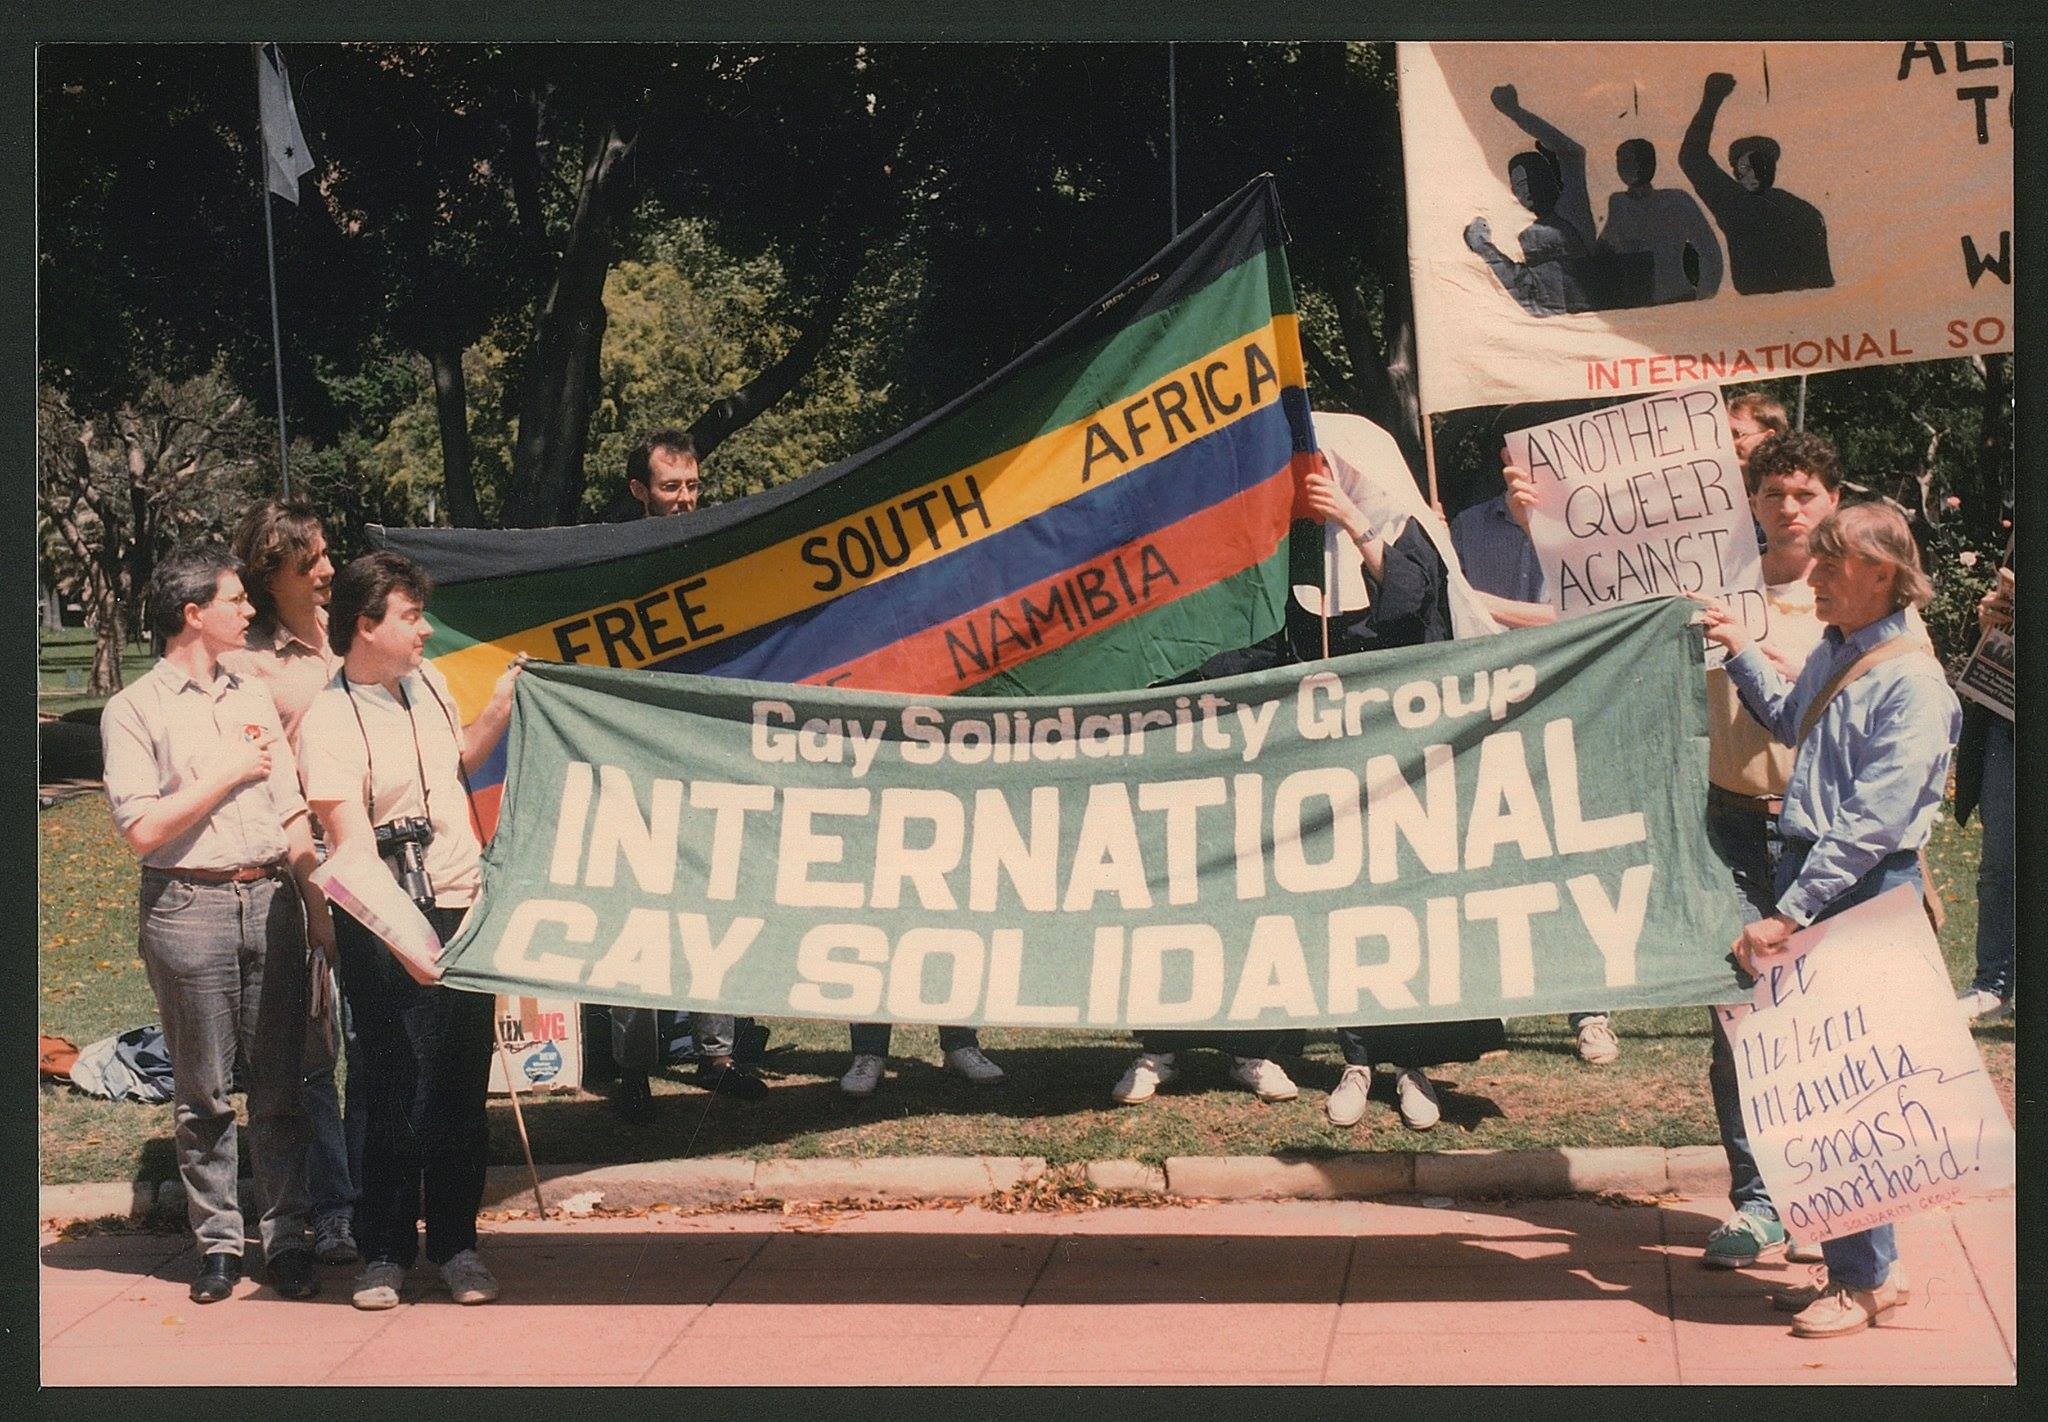 Ken Lovett (far right) with the Gay Solidarity Group at an anti-apartheid rally, Hyde Park Square, Sydney, c. March 1988